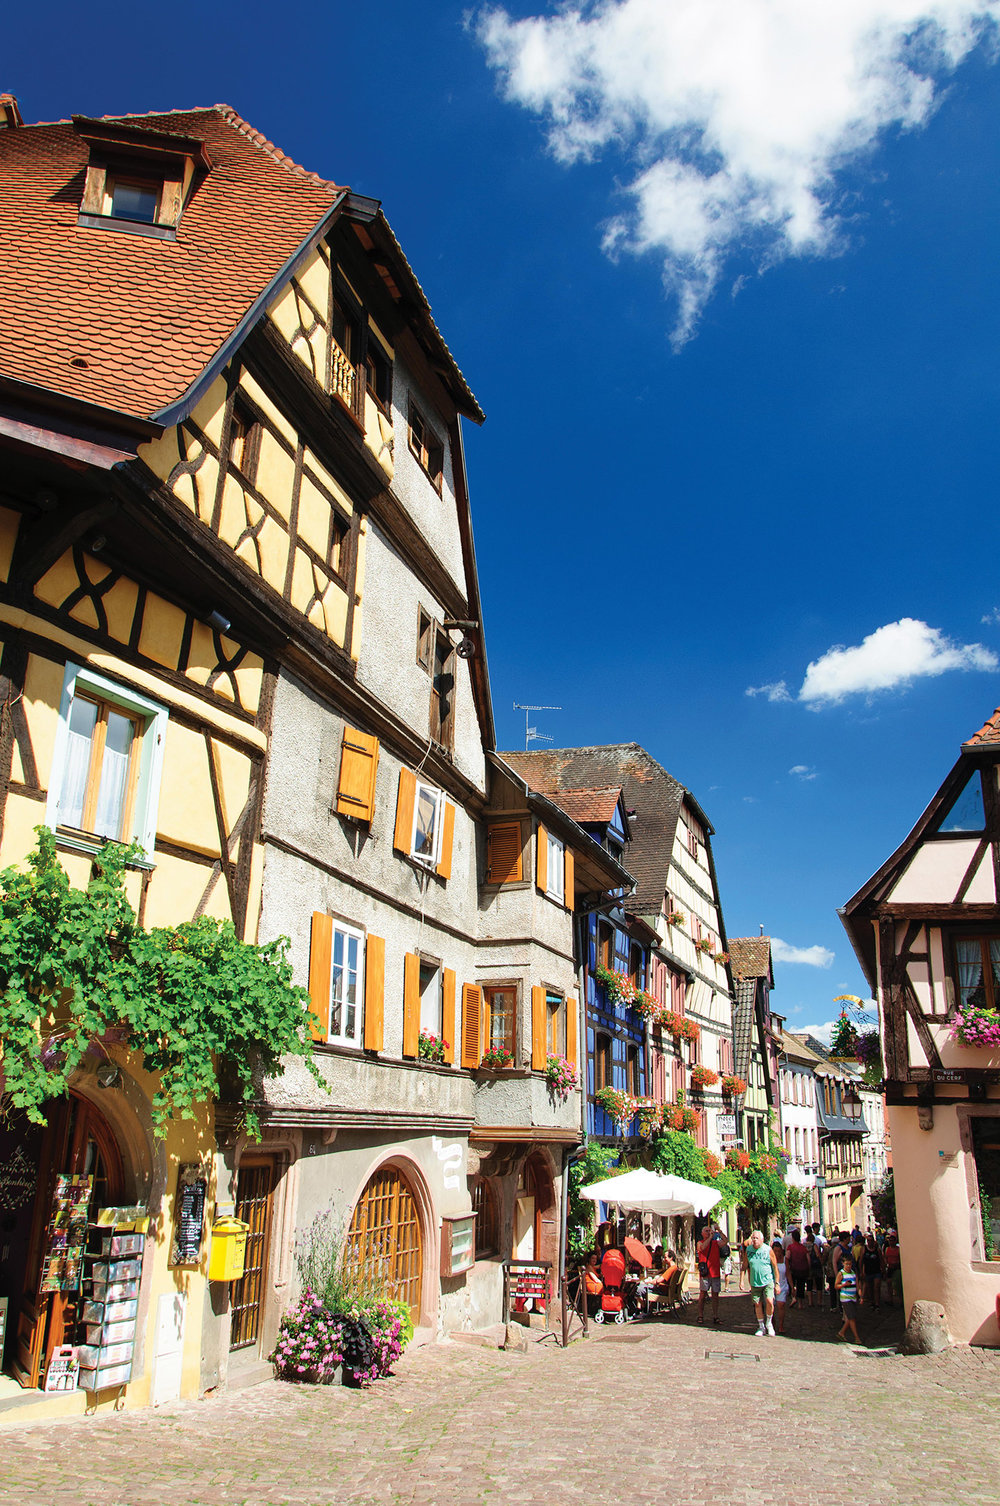 Ribeauvillé, Chef Keller's birthplace, one of the oldest medieval towns in the Alsace region of France, in existence since the 9th century.Oliver S / Shutterstock.com